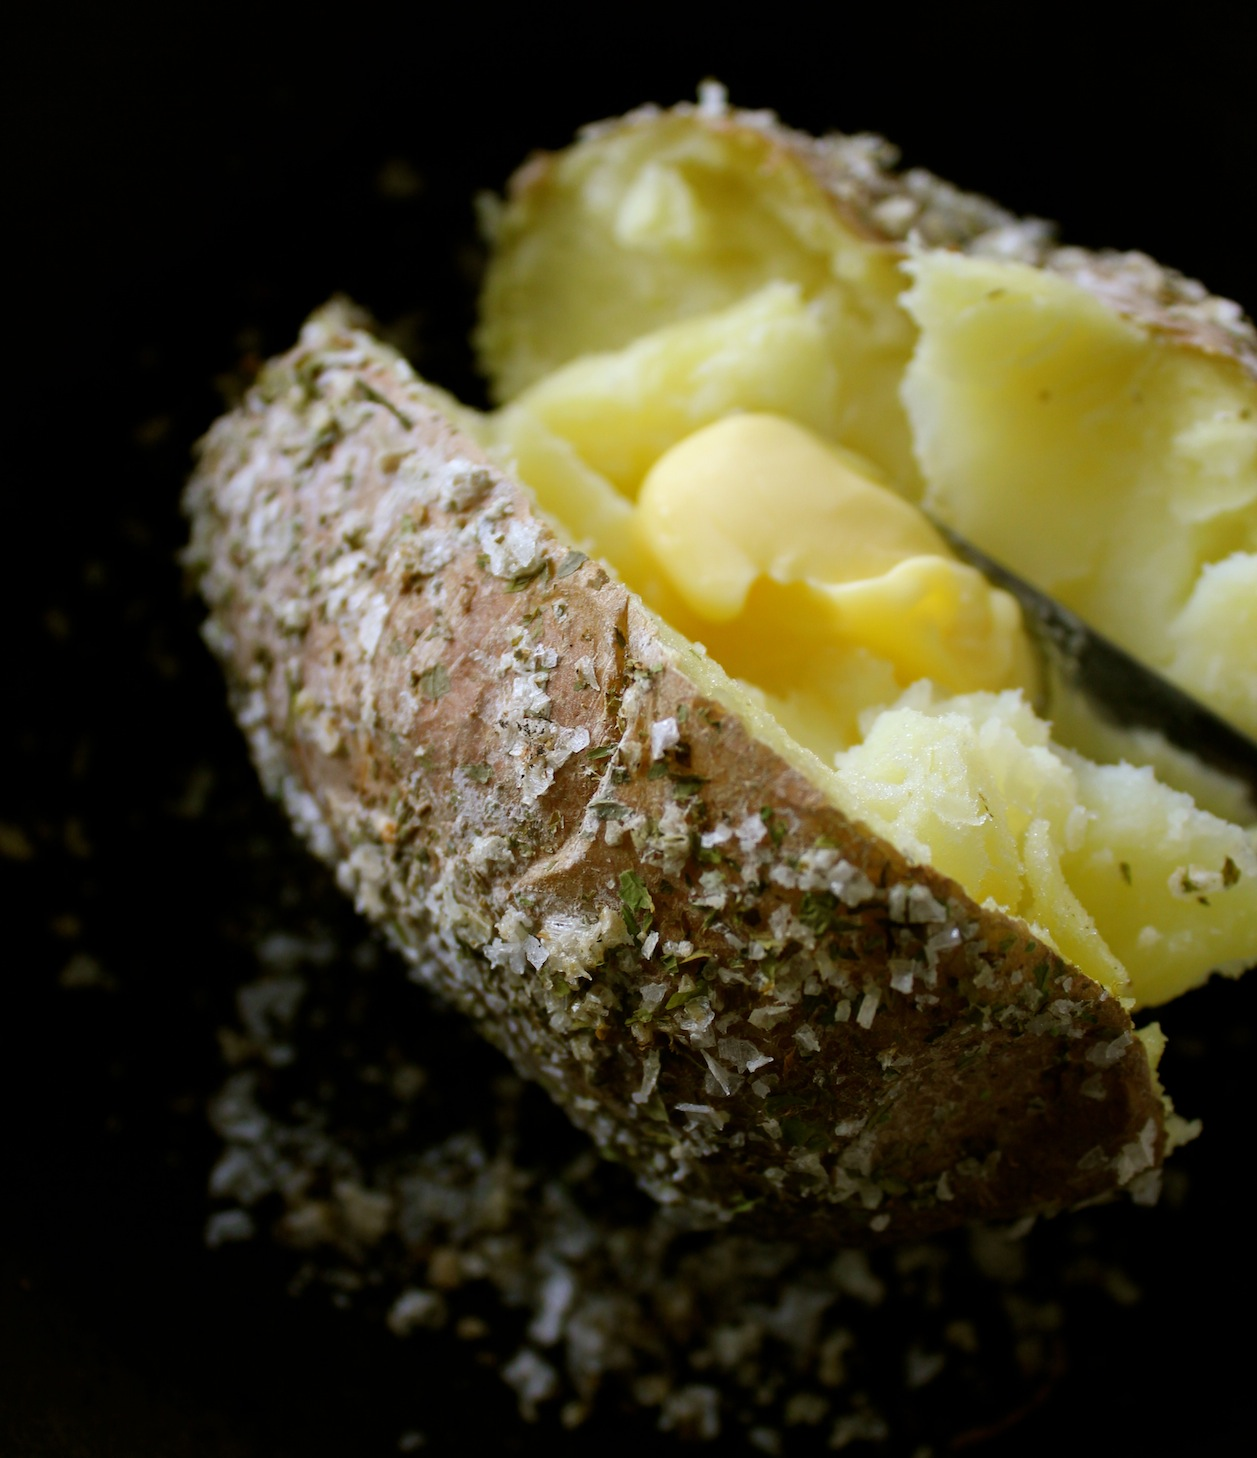 Homemade celery-salt crusted baked potato